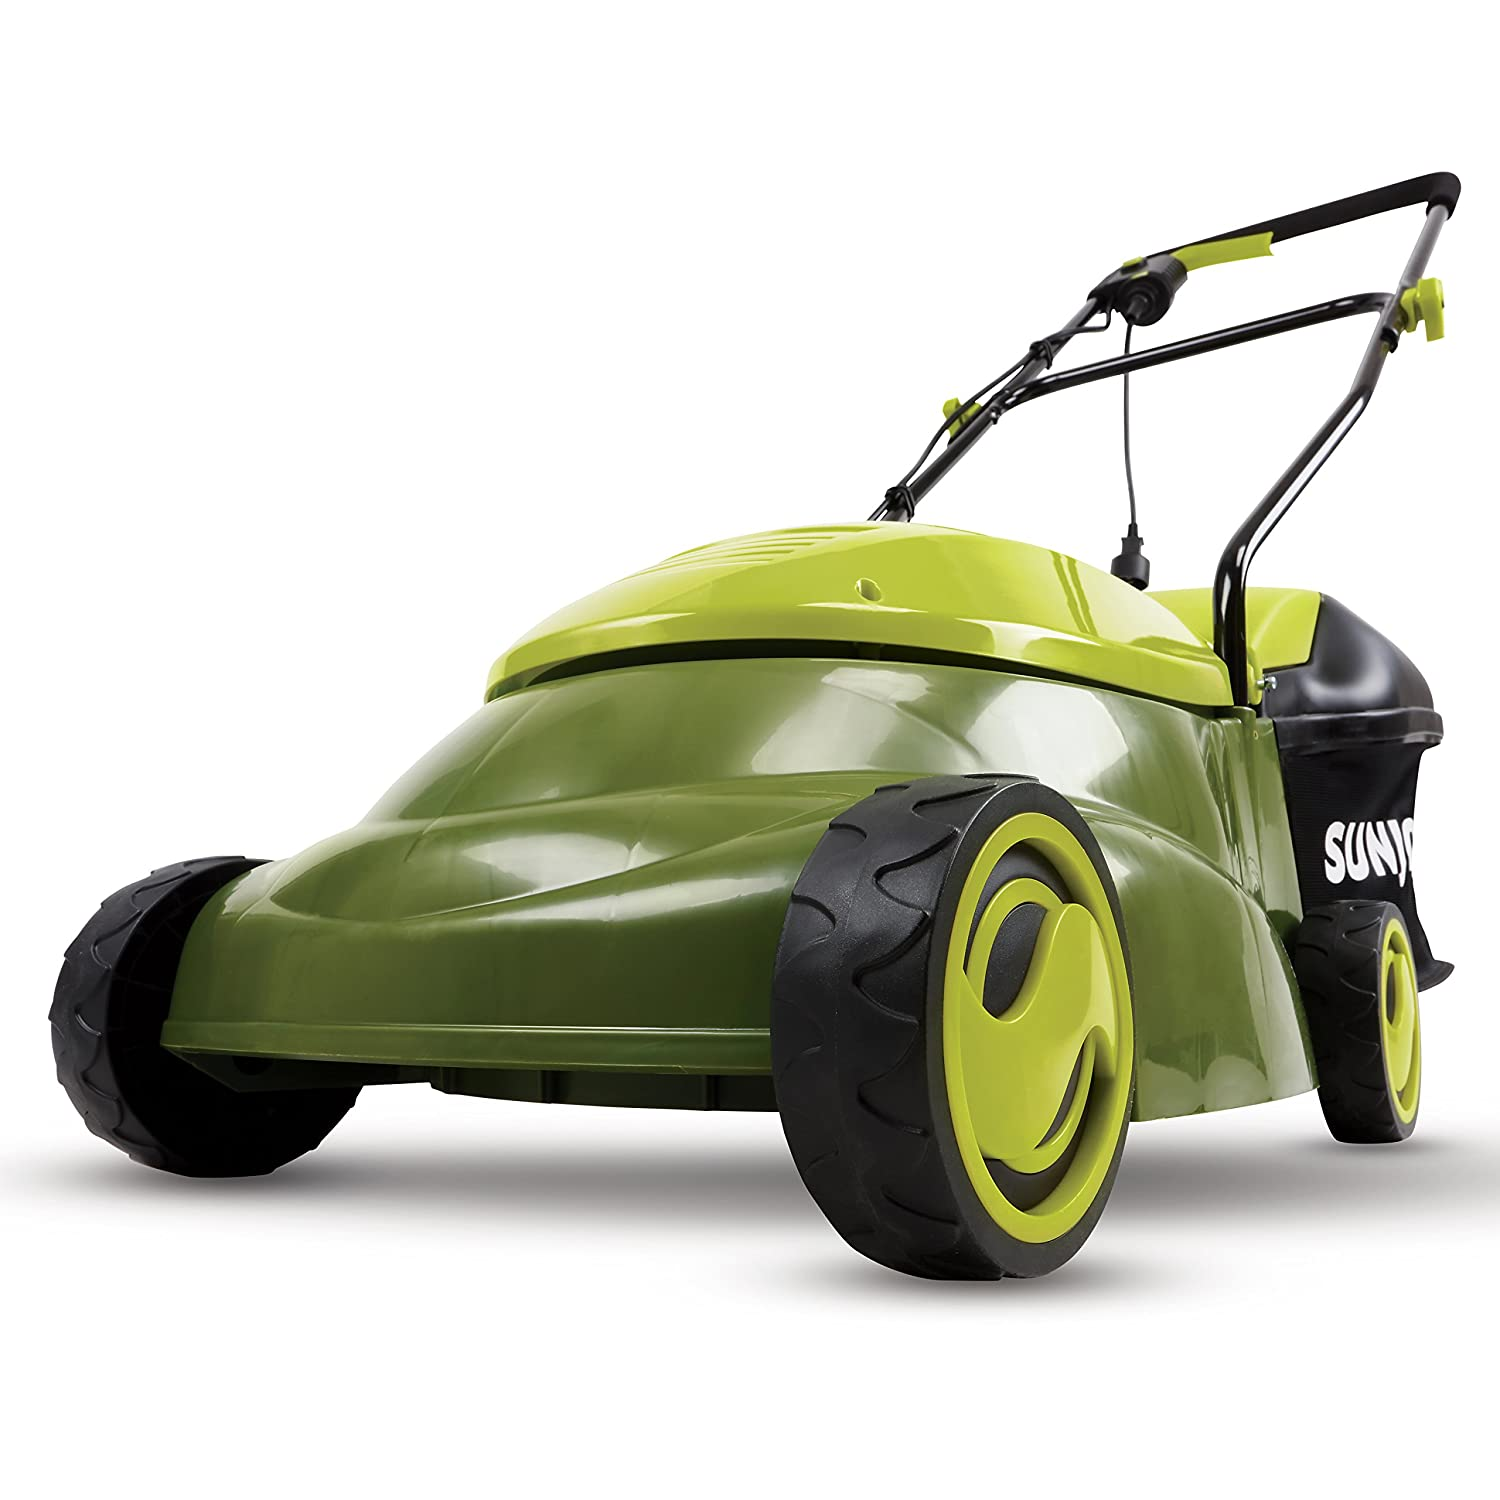 Lawn mower tractor walk behind lawn mowers riding lawn mowers sun fandeluxe Image collections